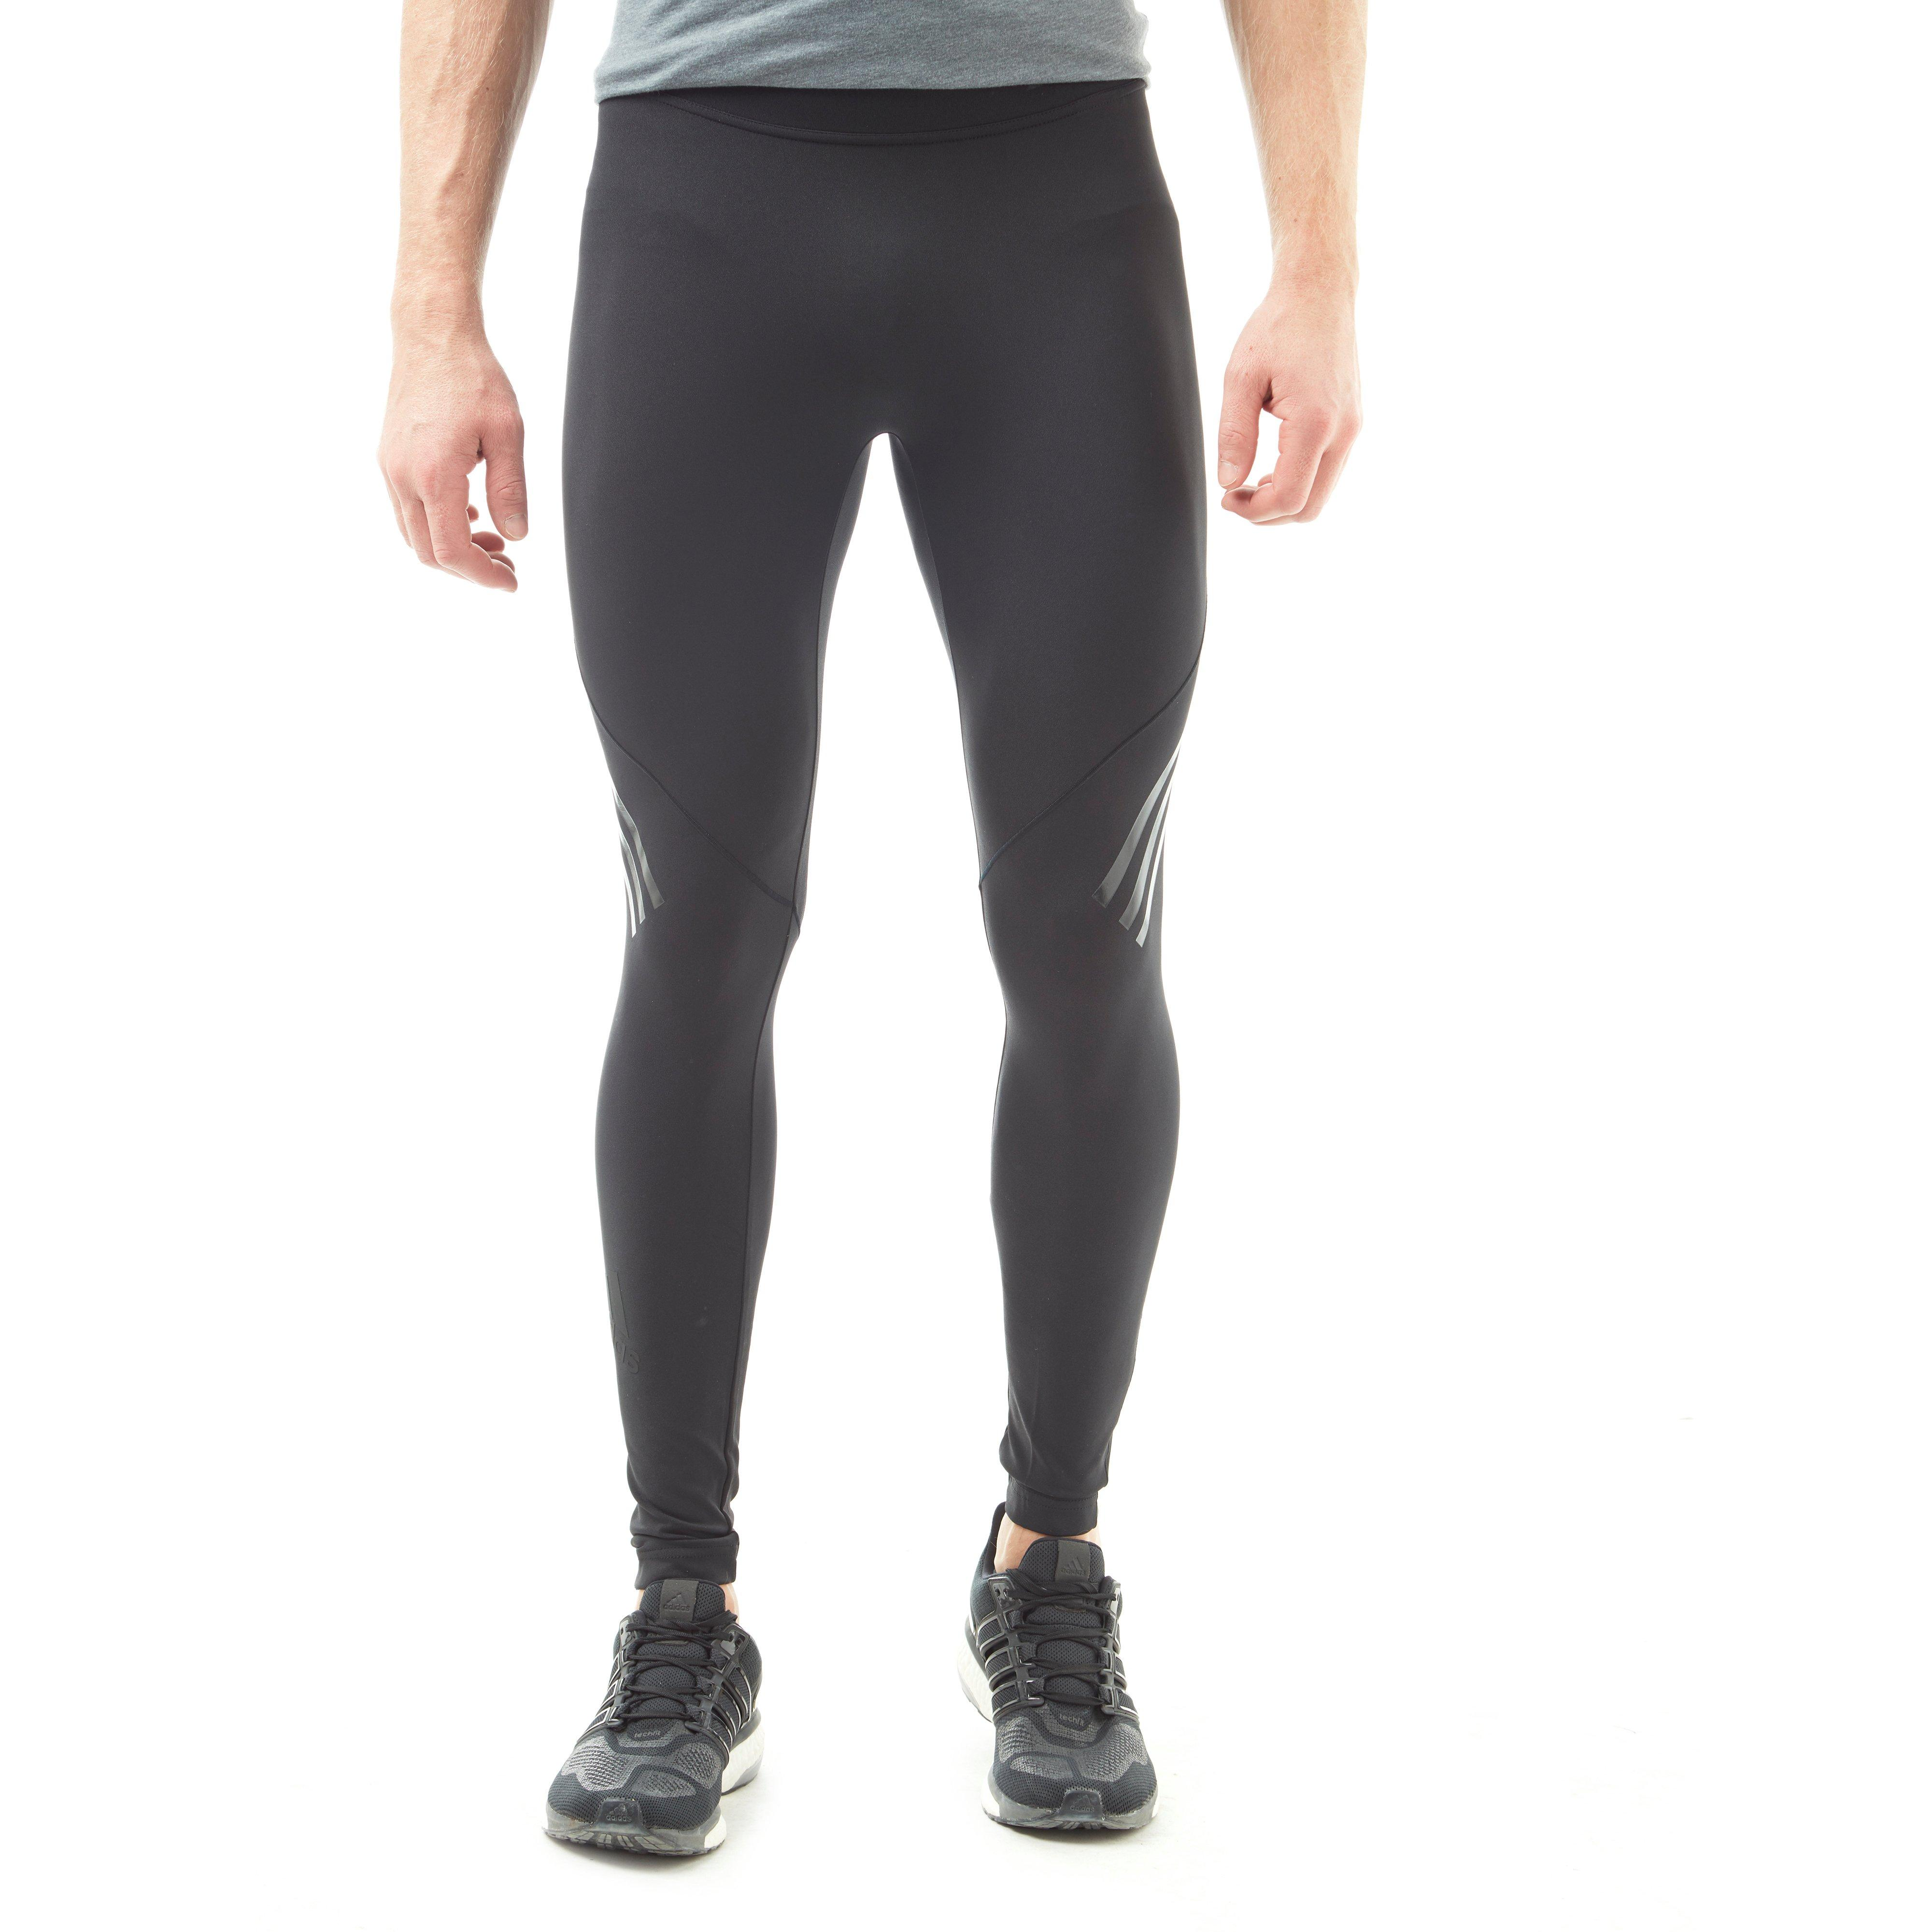 47099b2672db8 Details about adidas Alphaskin Tech 3-Stripes Men's Long Training Tights